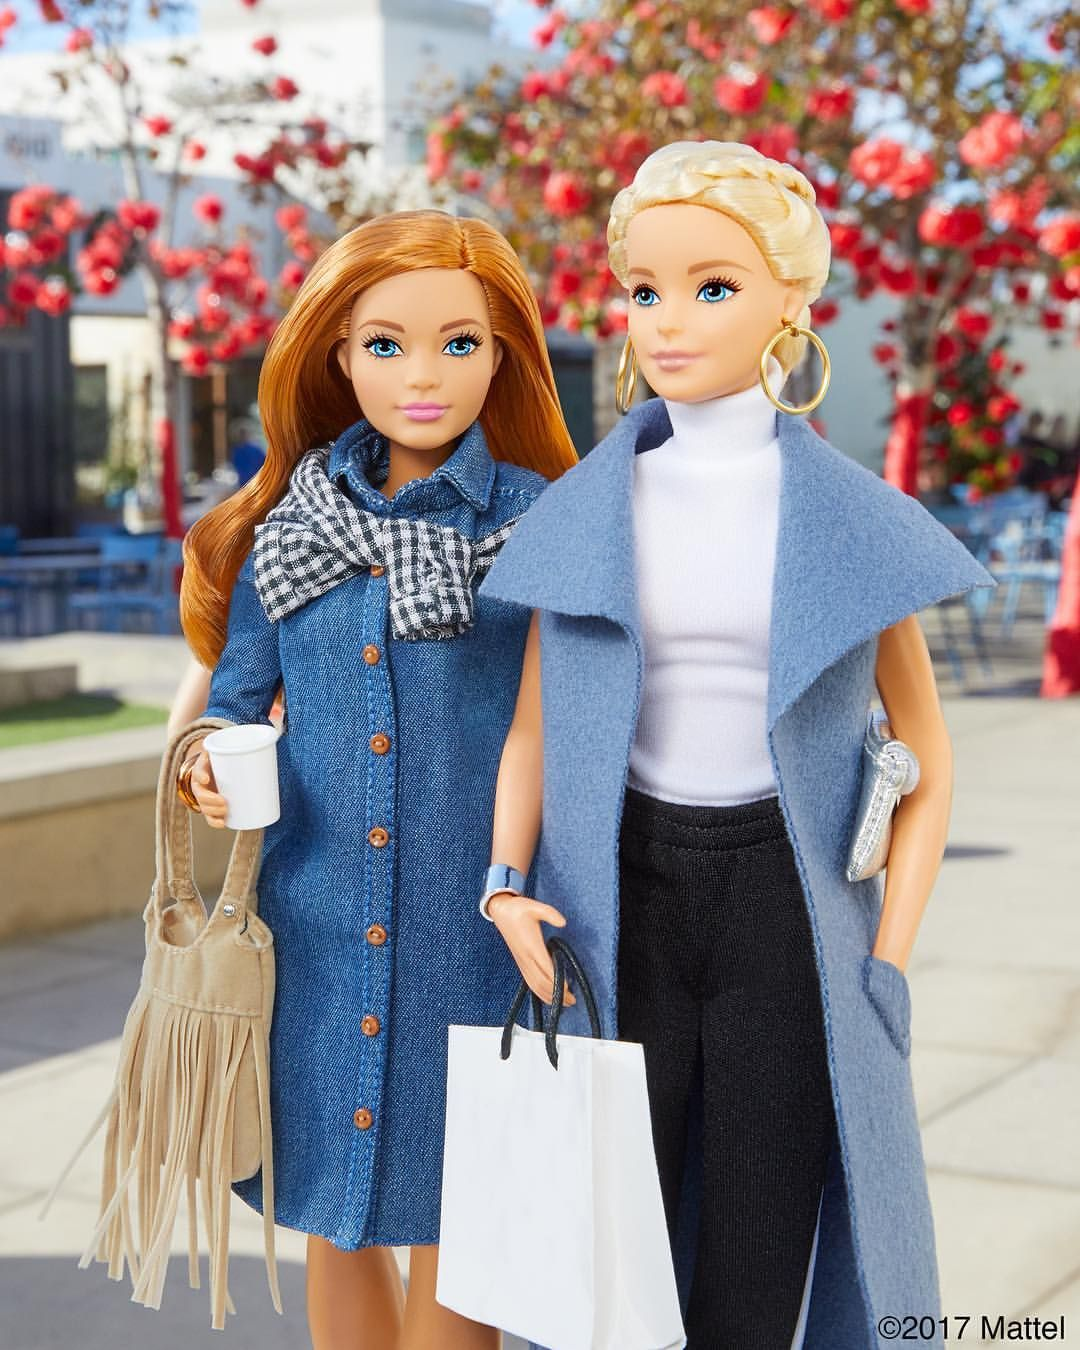 Holiday errands are better with friends! So much to do, so little time. ???? #barbie #barbiestyle #dollaccessories